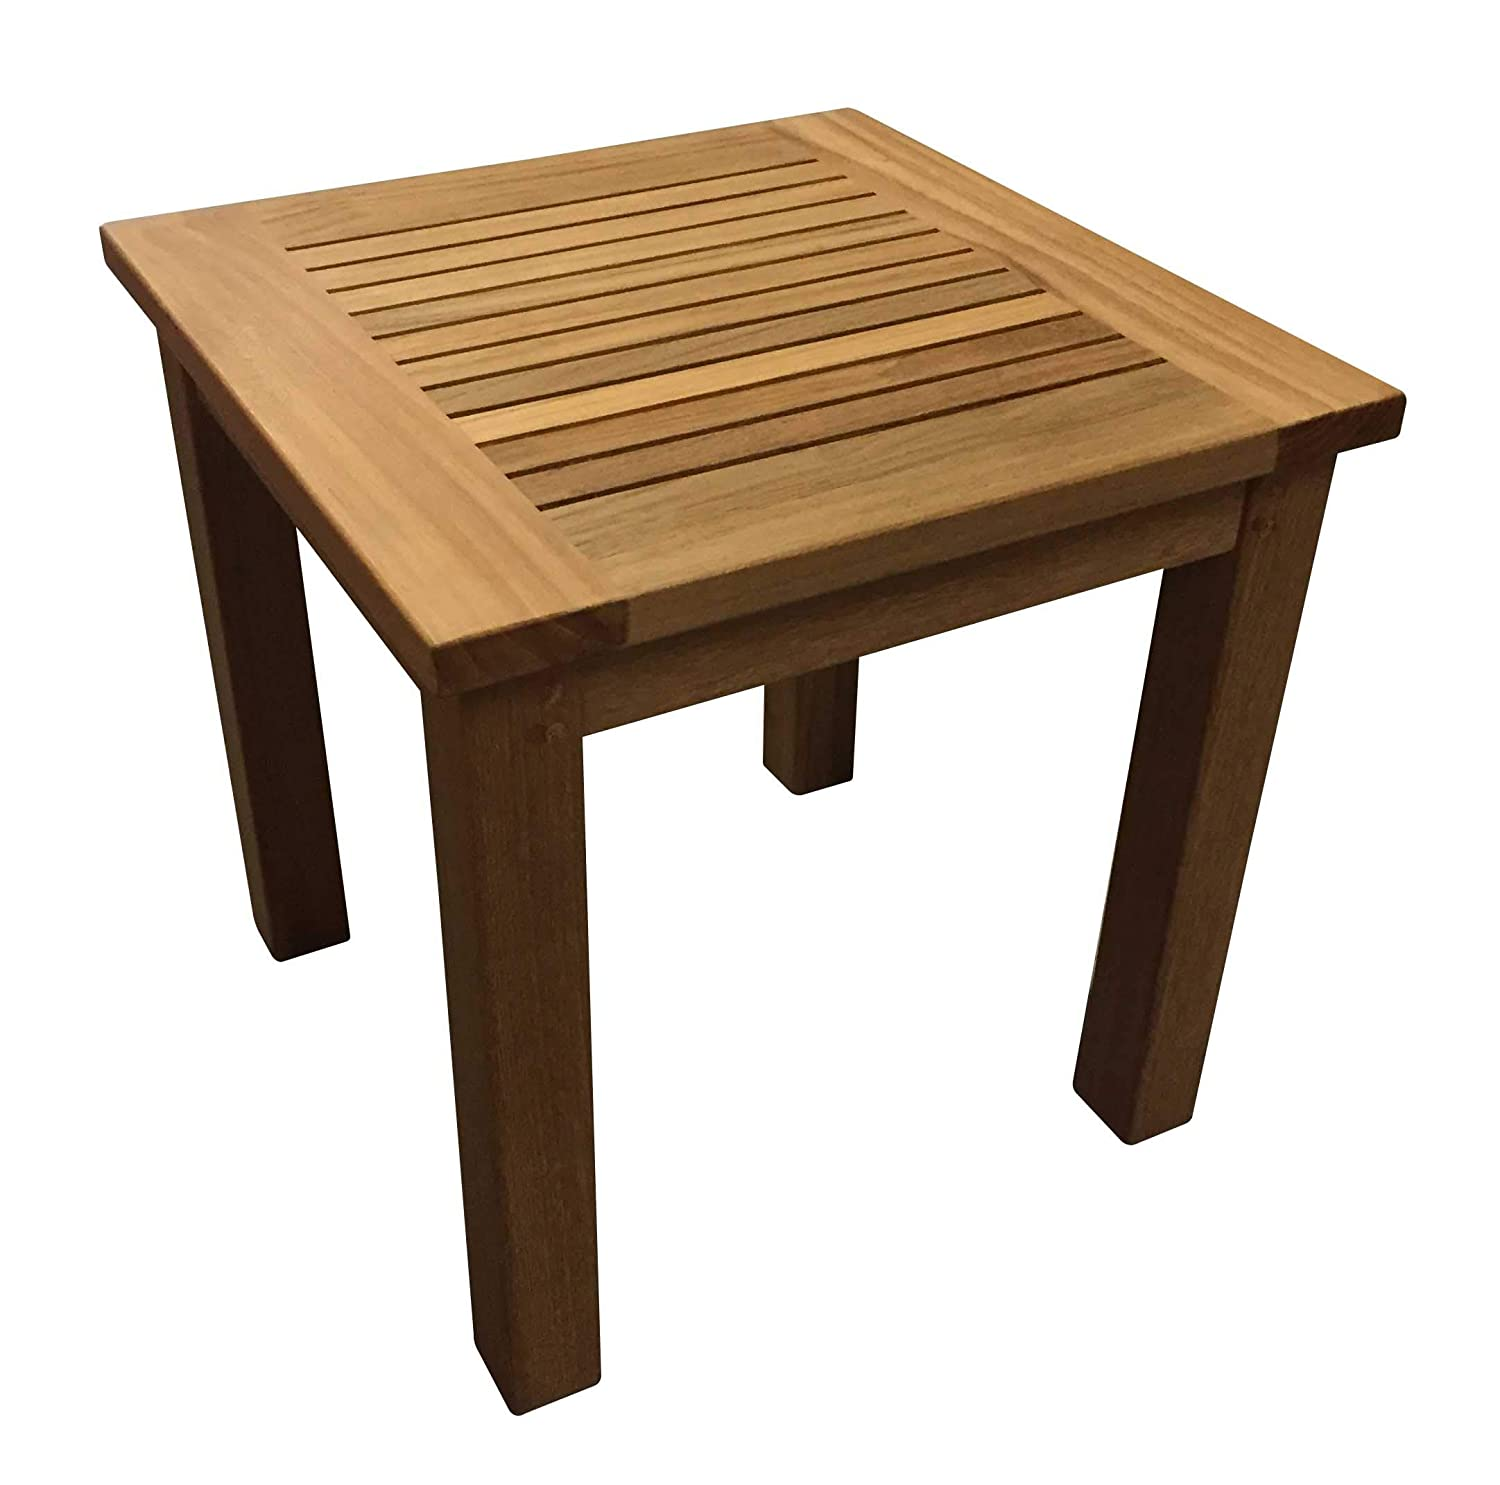 Amazon Com Atlanta Teak Furniture Teak Side Table 17 Square